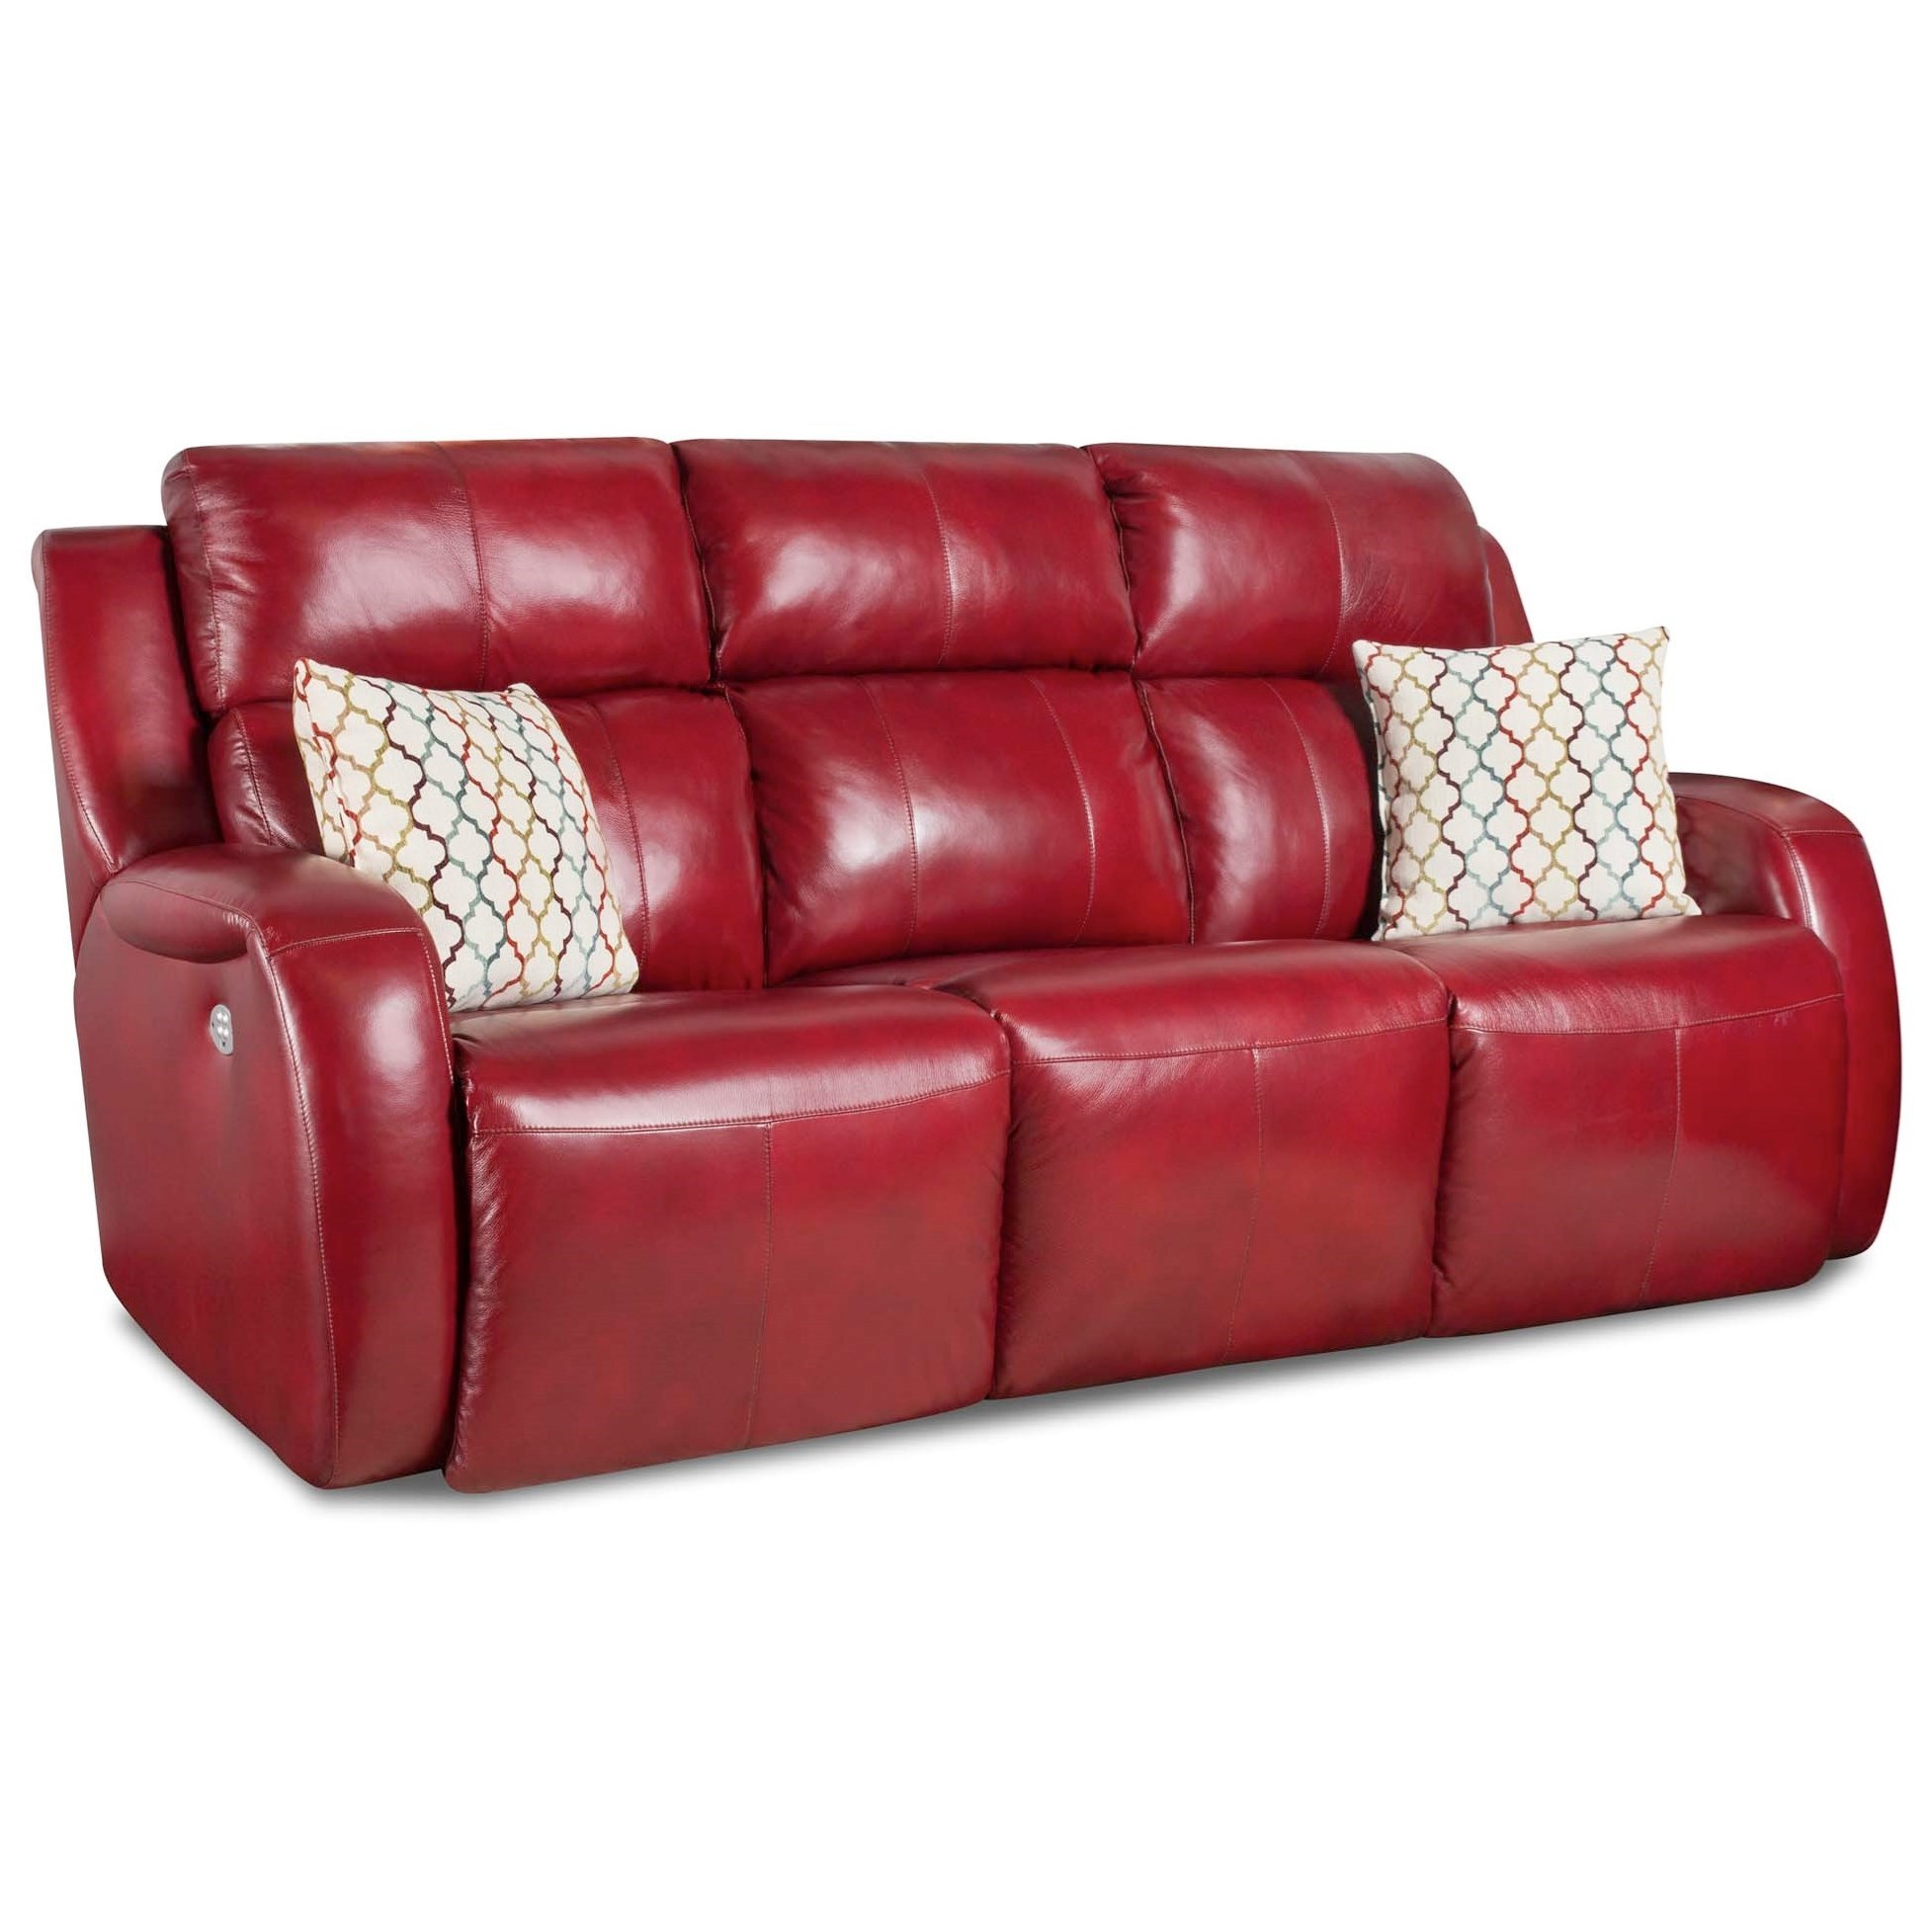 Southern Motion Grand Slam Reclining Sofa w/ Pillows and Power Headrest - Item Number: 864-62P-906-42